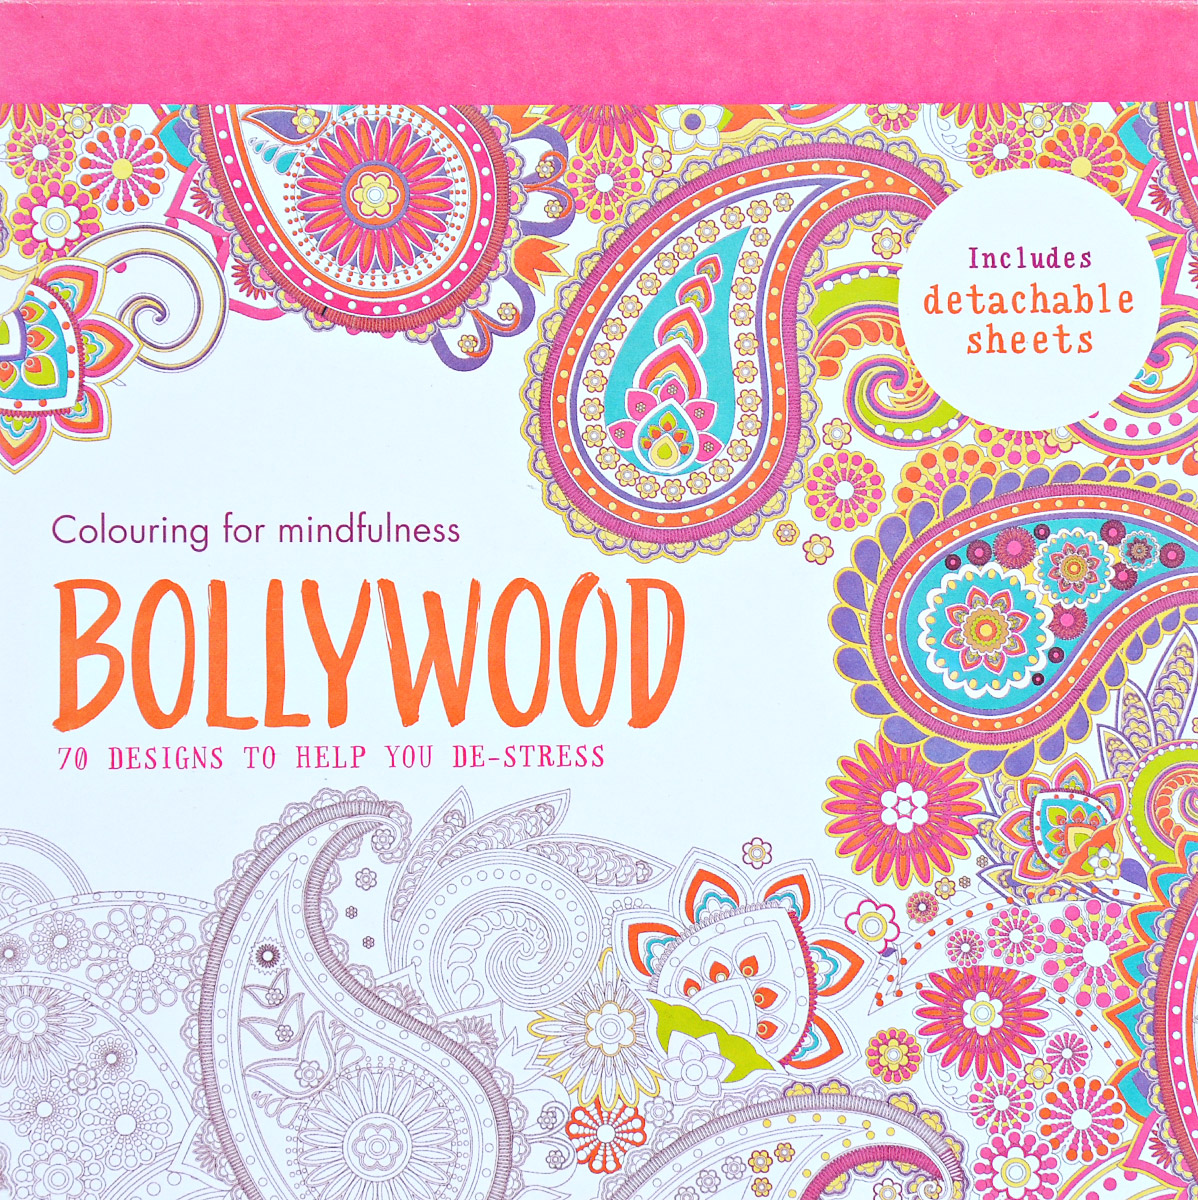 Bollywood: 70 Designs to Help You De-Stress: Colouring for Mindfulness